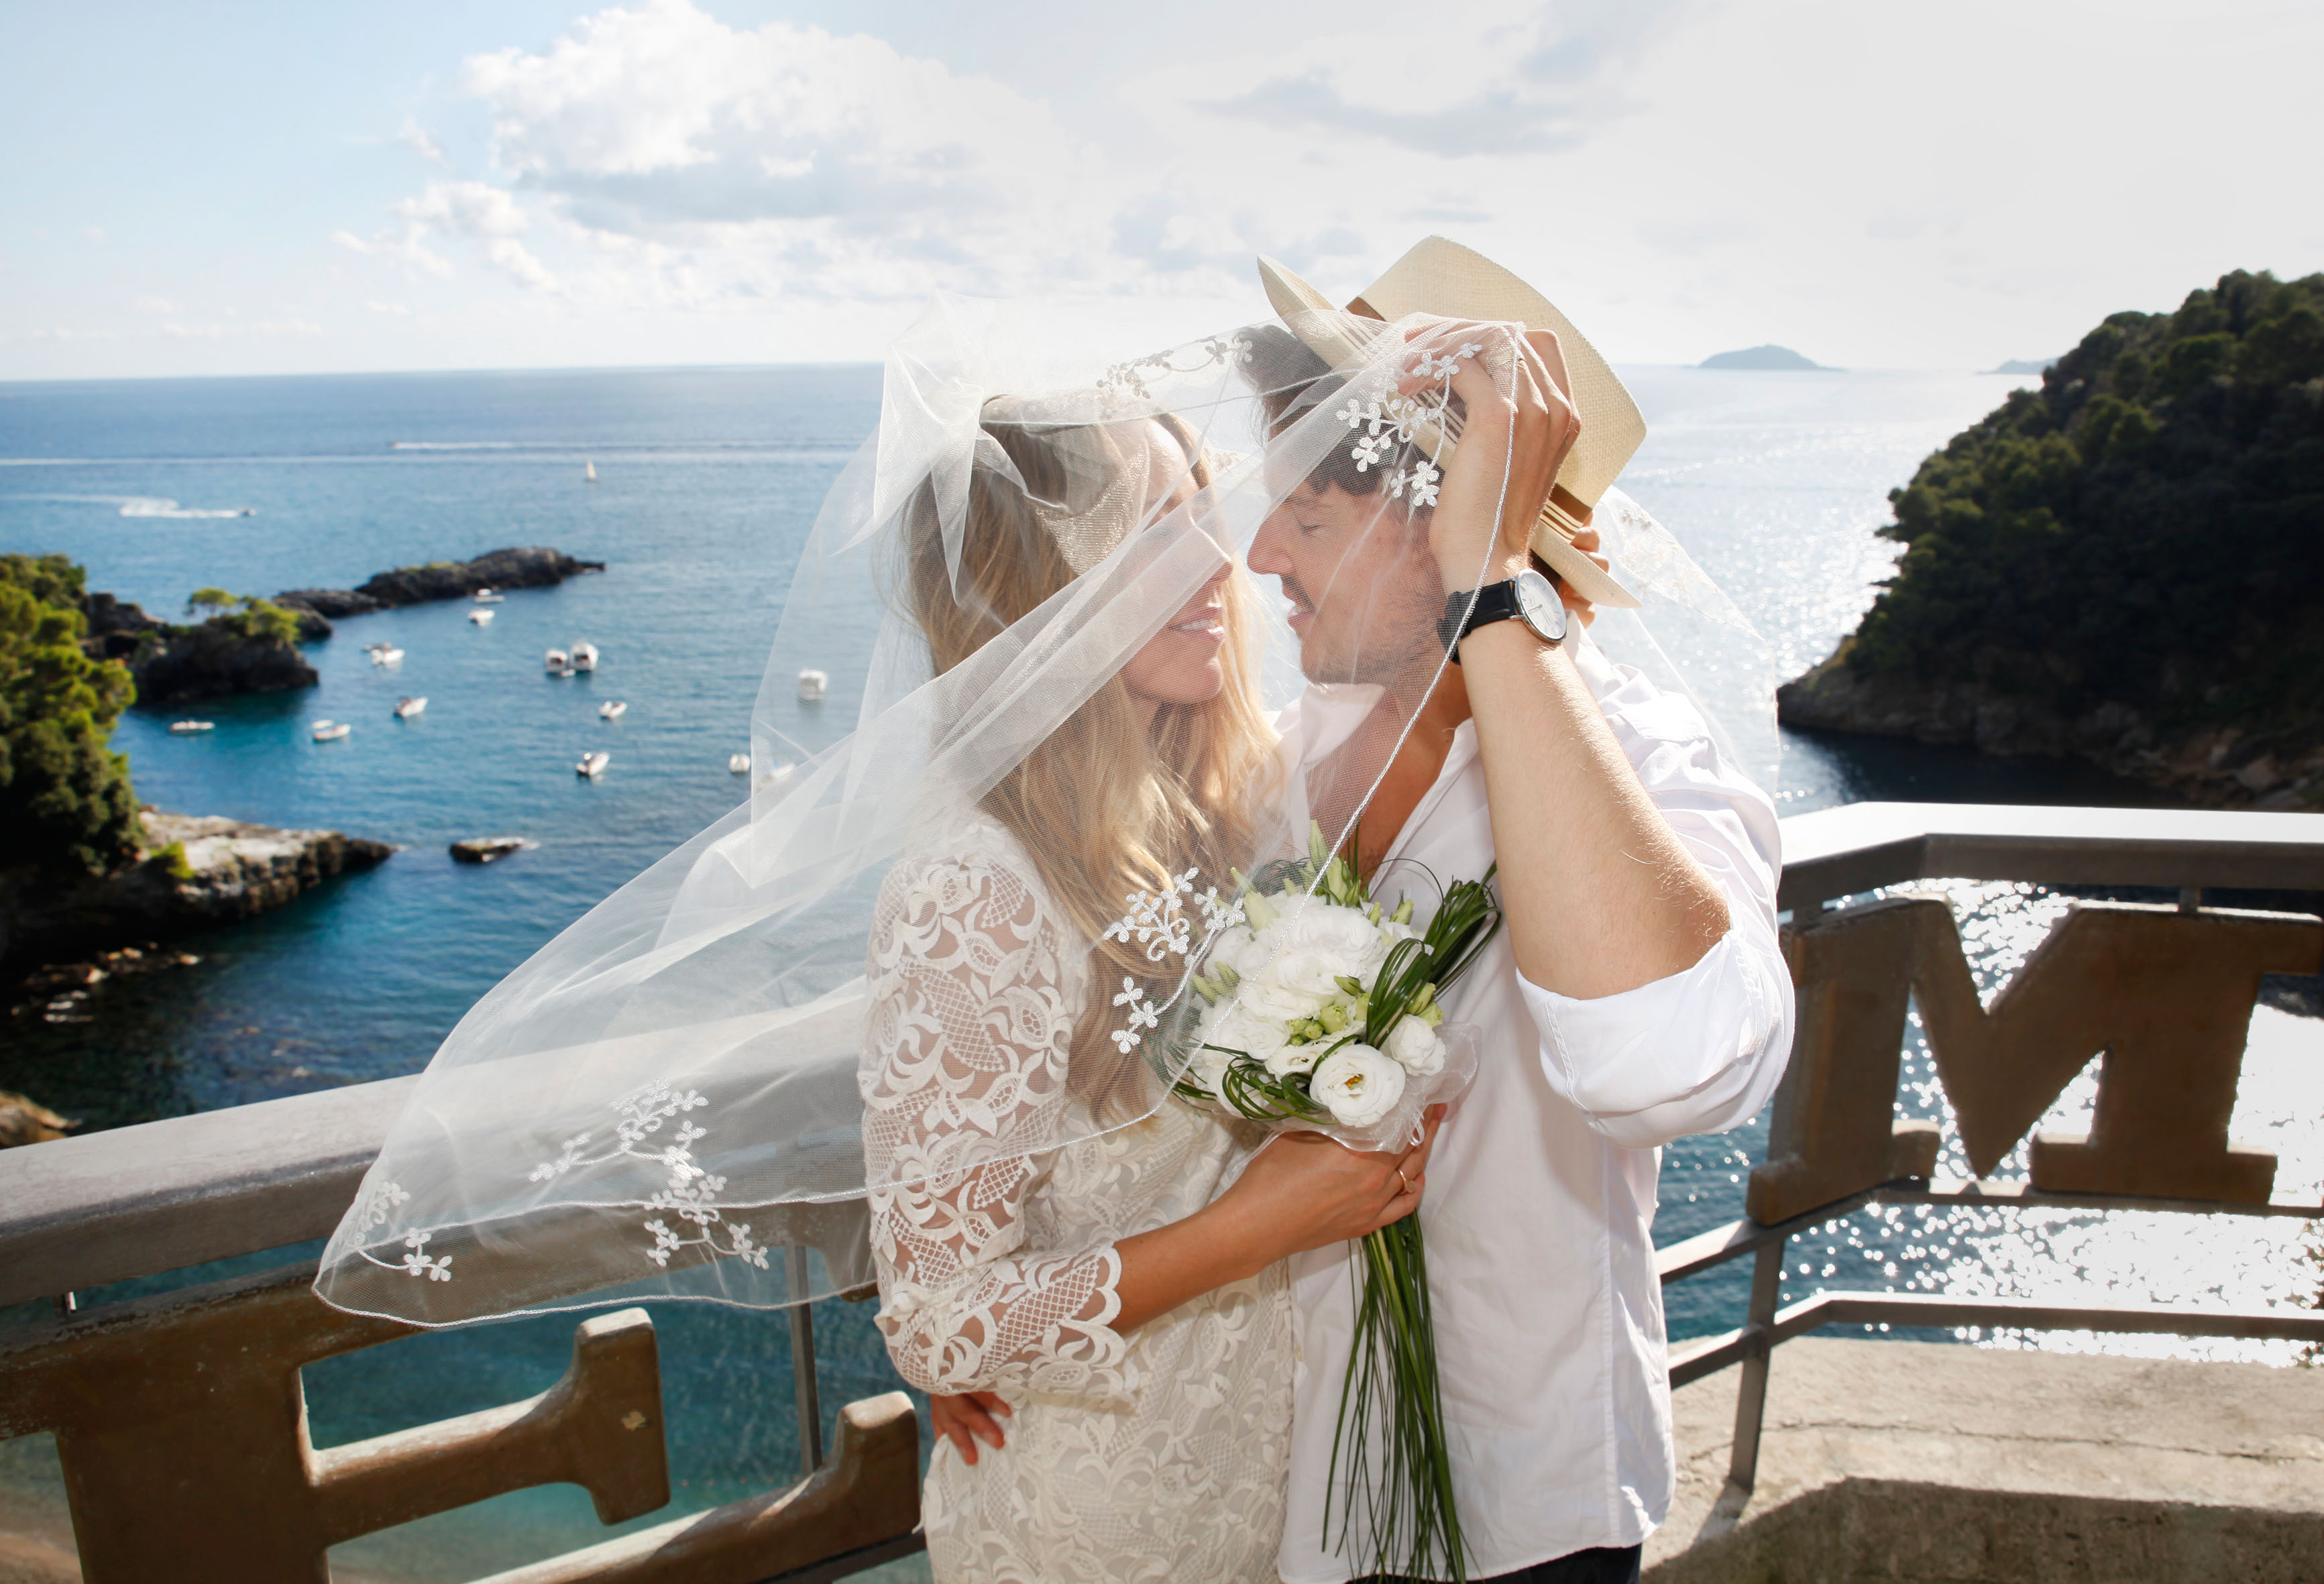 Weddings on the Italian Riviera